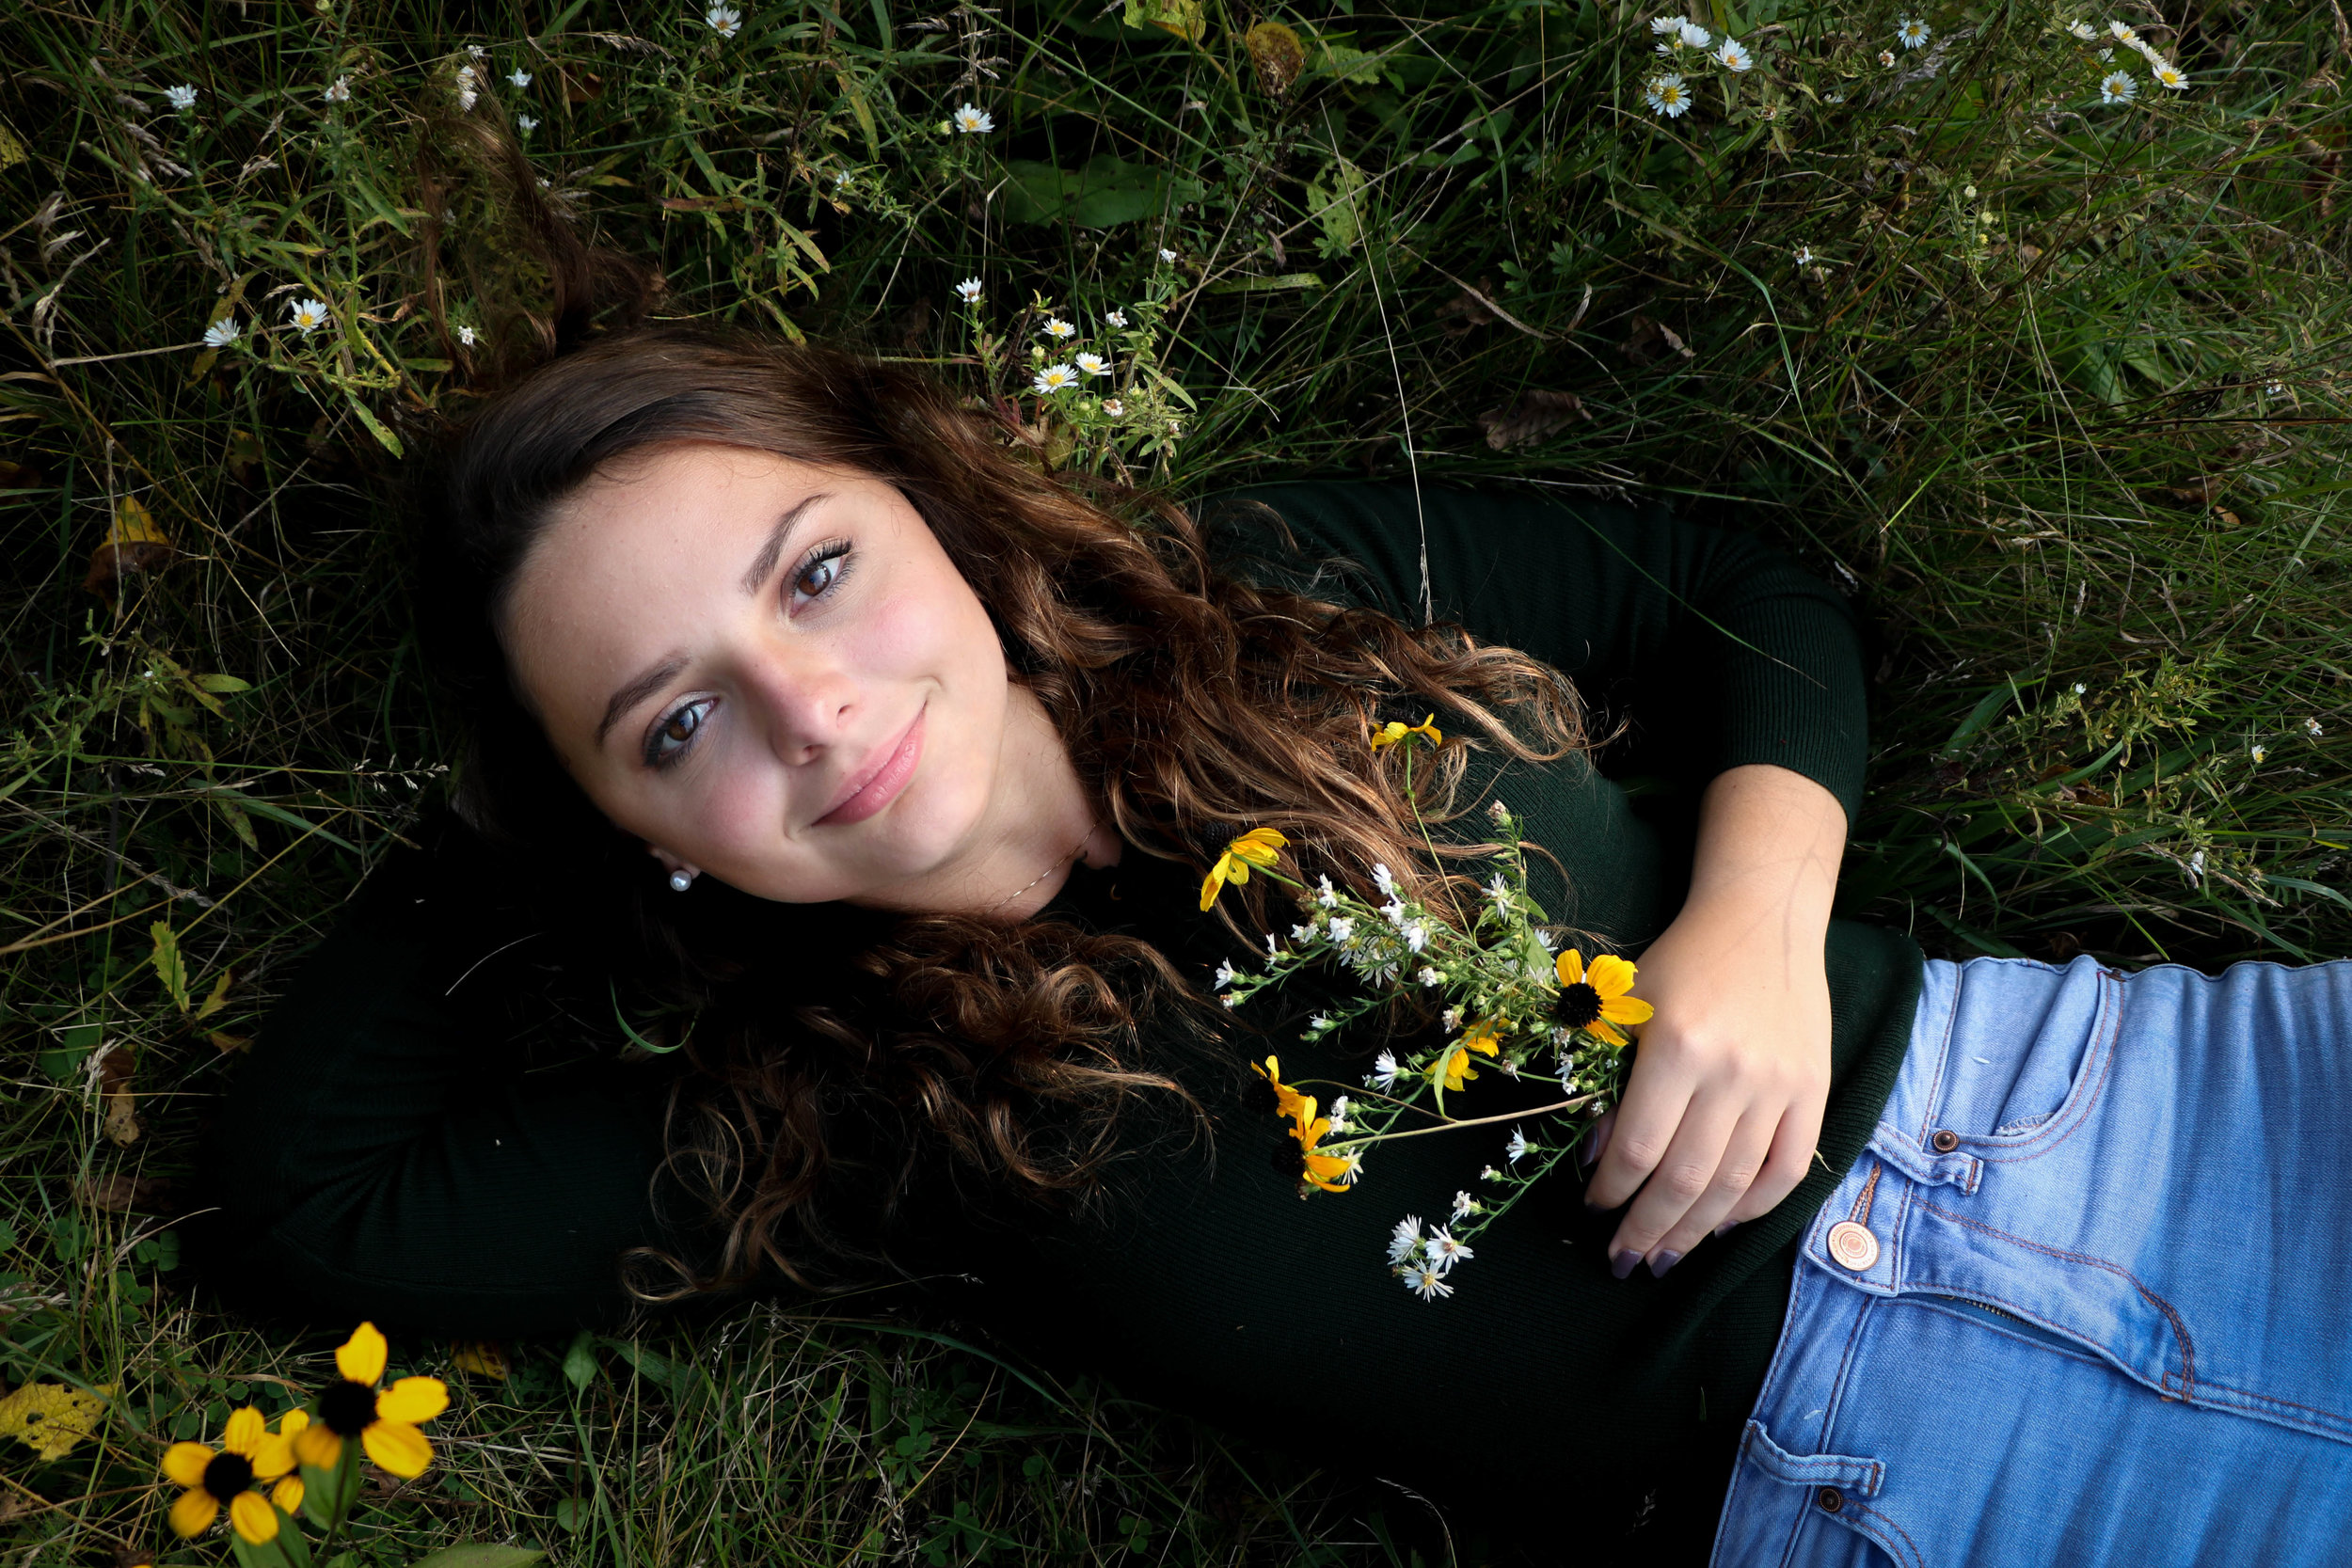 senior portraits: $75 - now booking Summer 2018